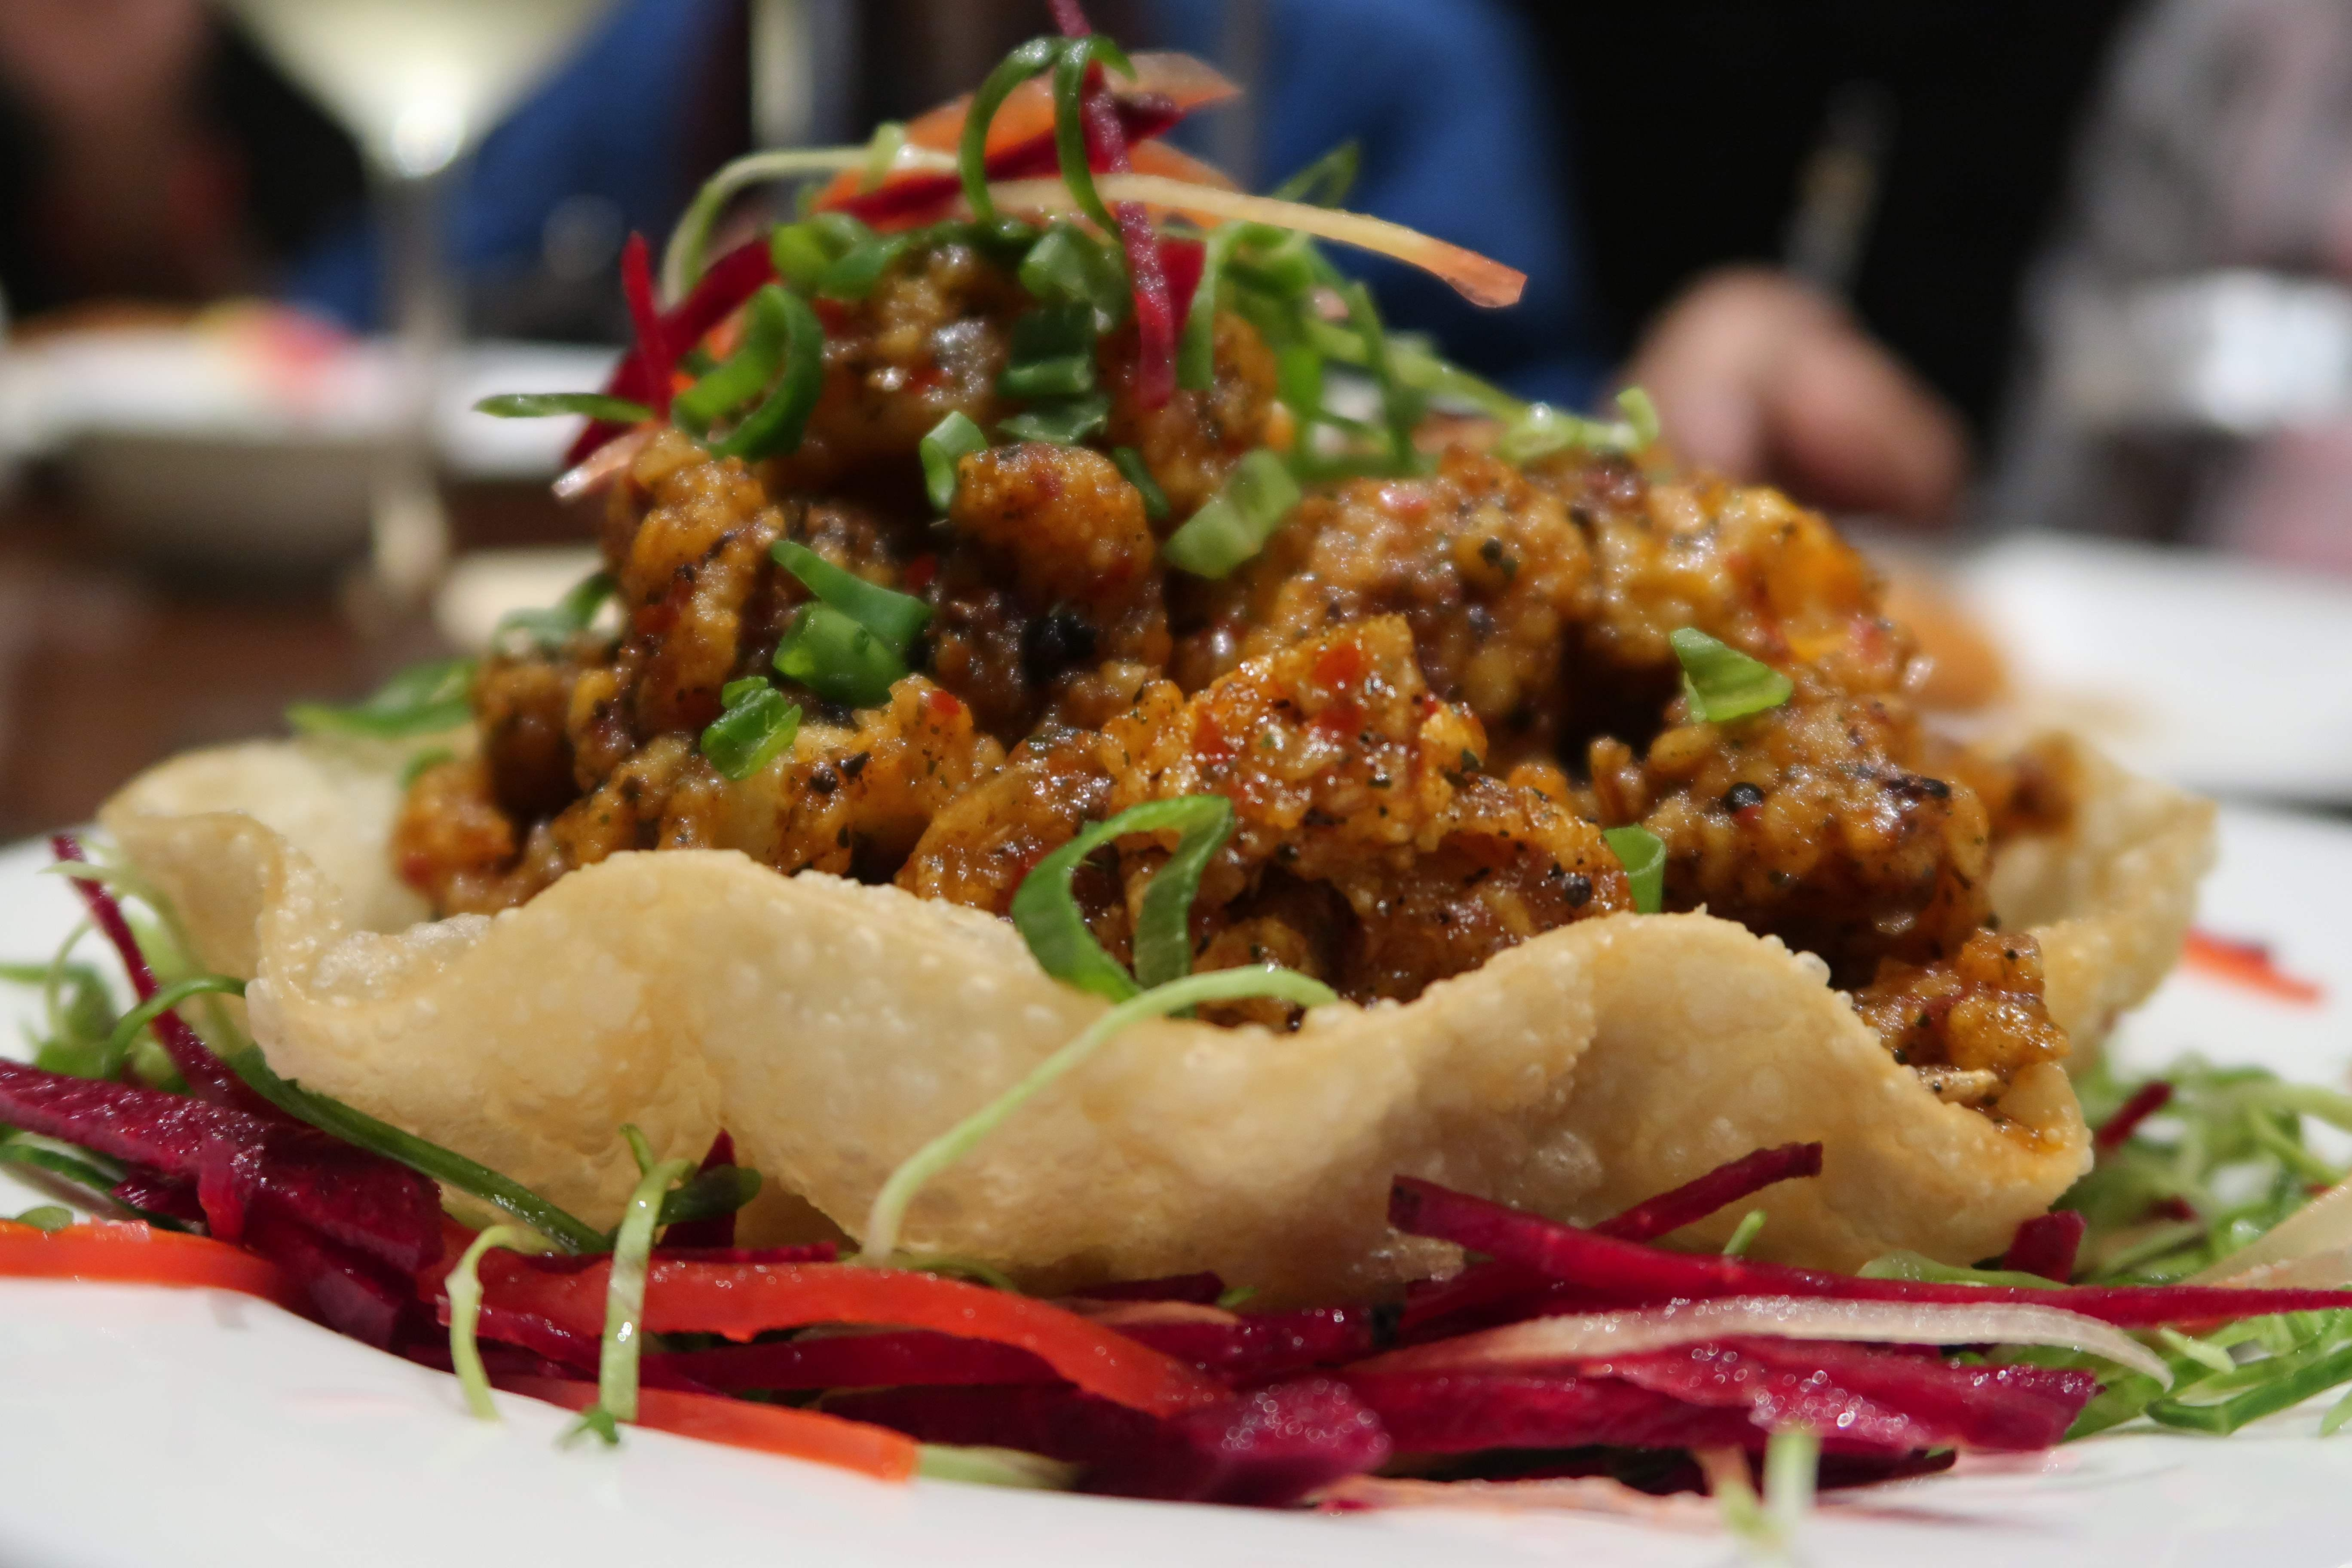 Food,Cuisine,Dish,Ingredient,Meat,Produce,Fried food,Soft-shell crab,Recipe,Larb